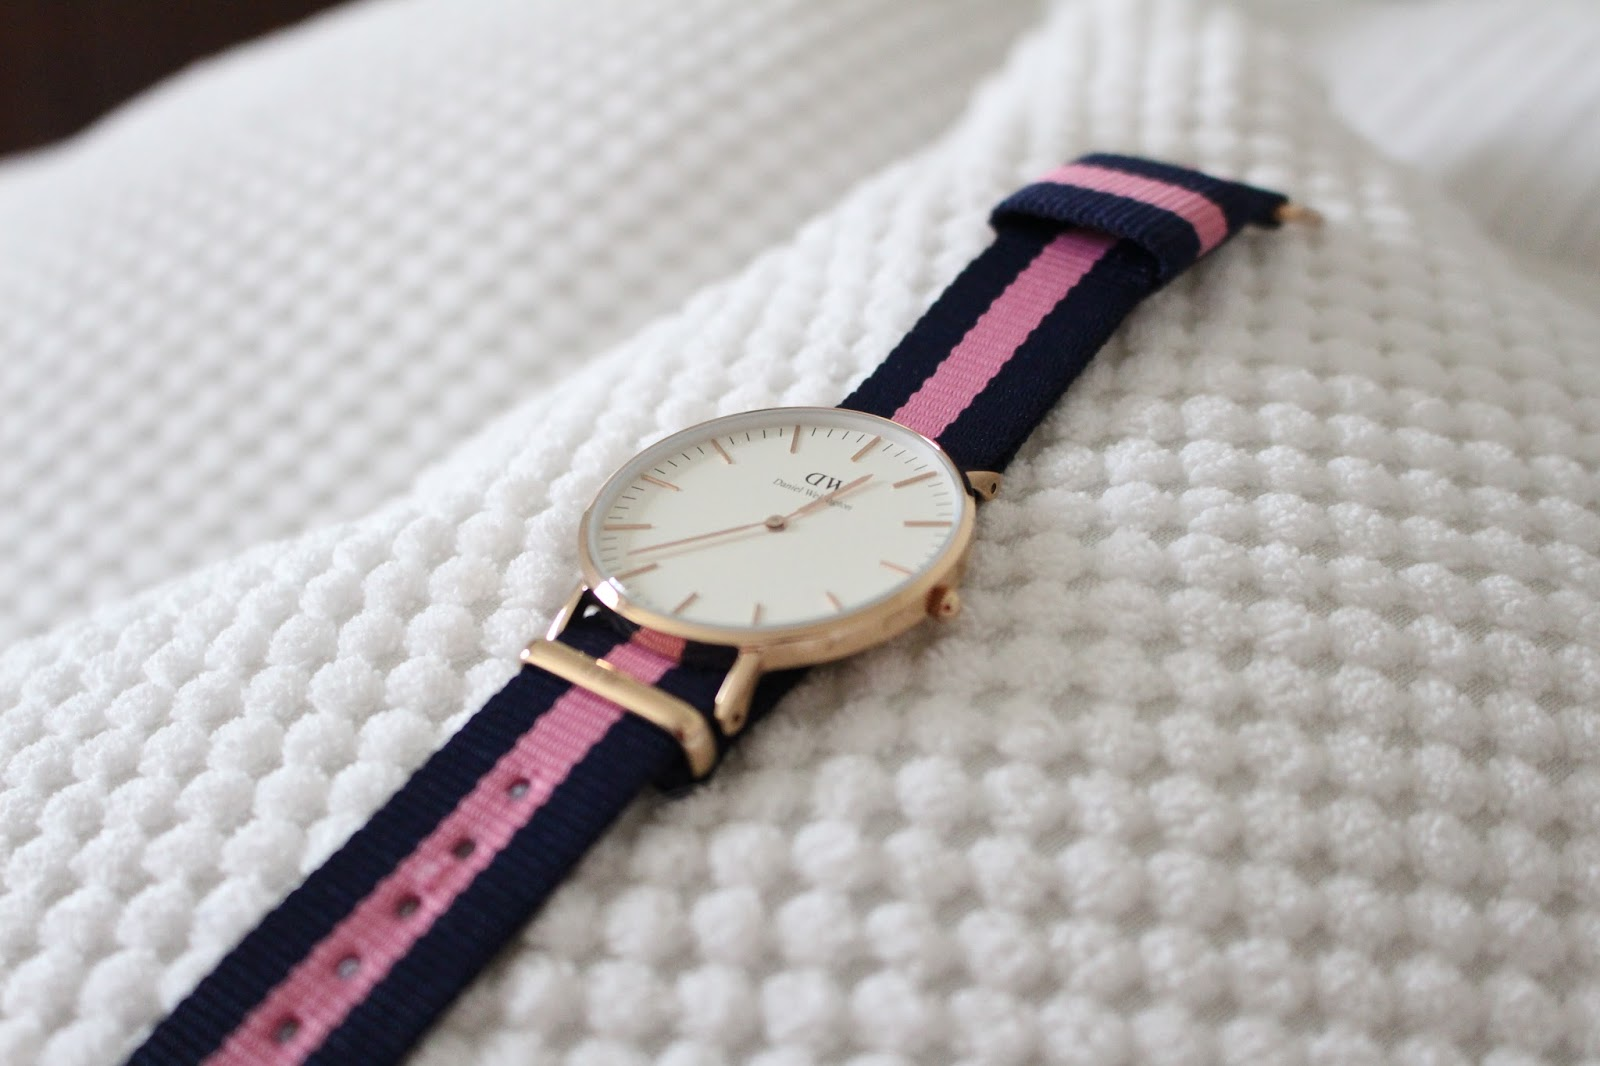 les montres daniel wellington mon avis les id es soaddict. Black Bedroom Furniture Sets. Home Design Ideas